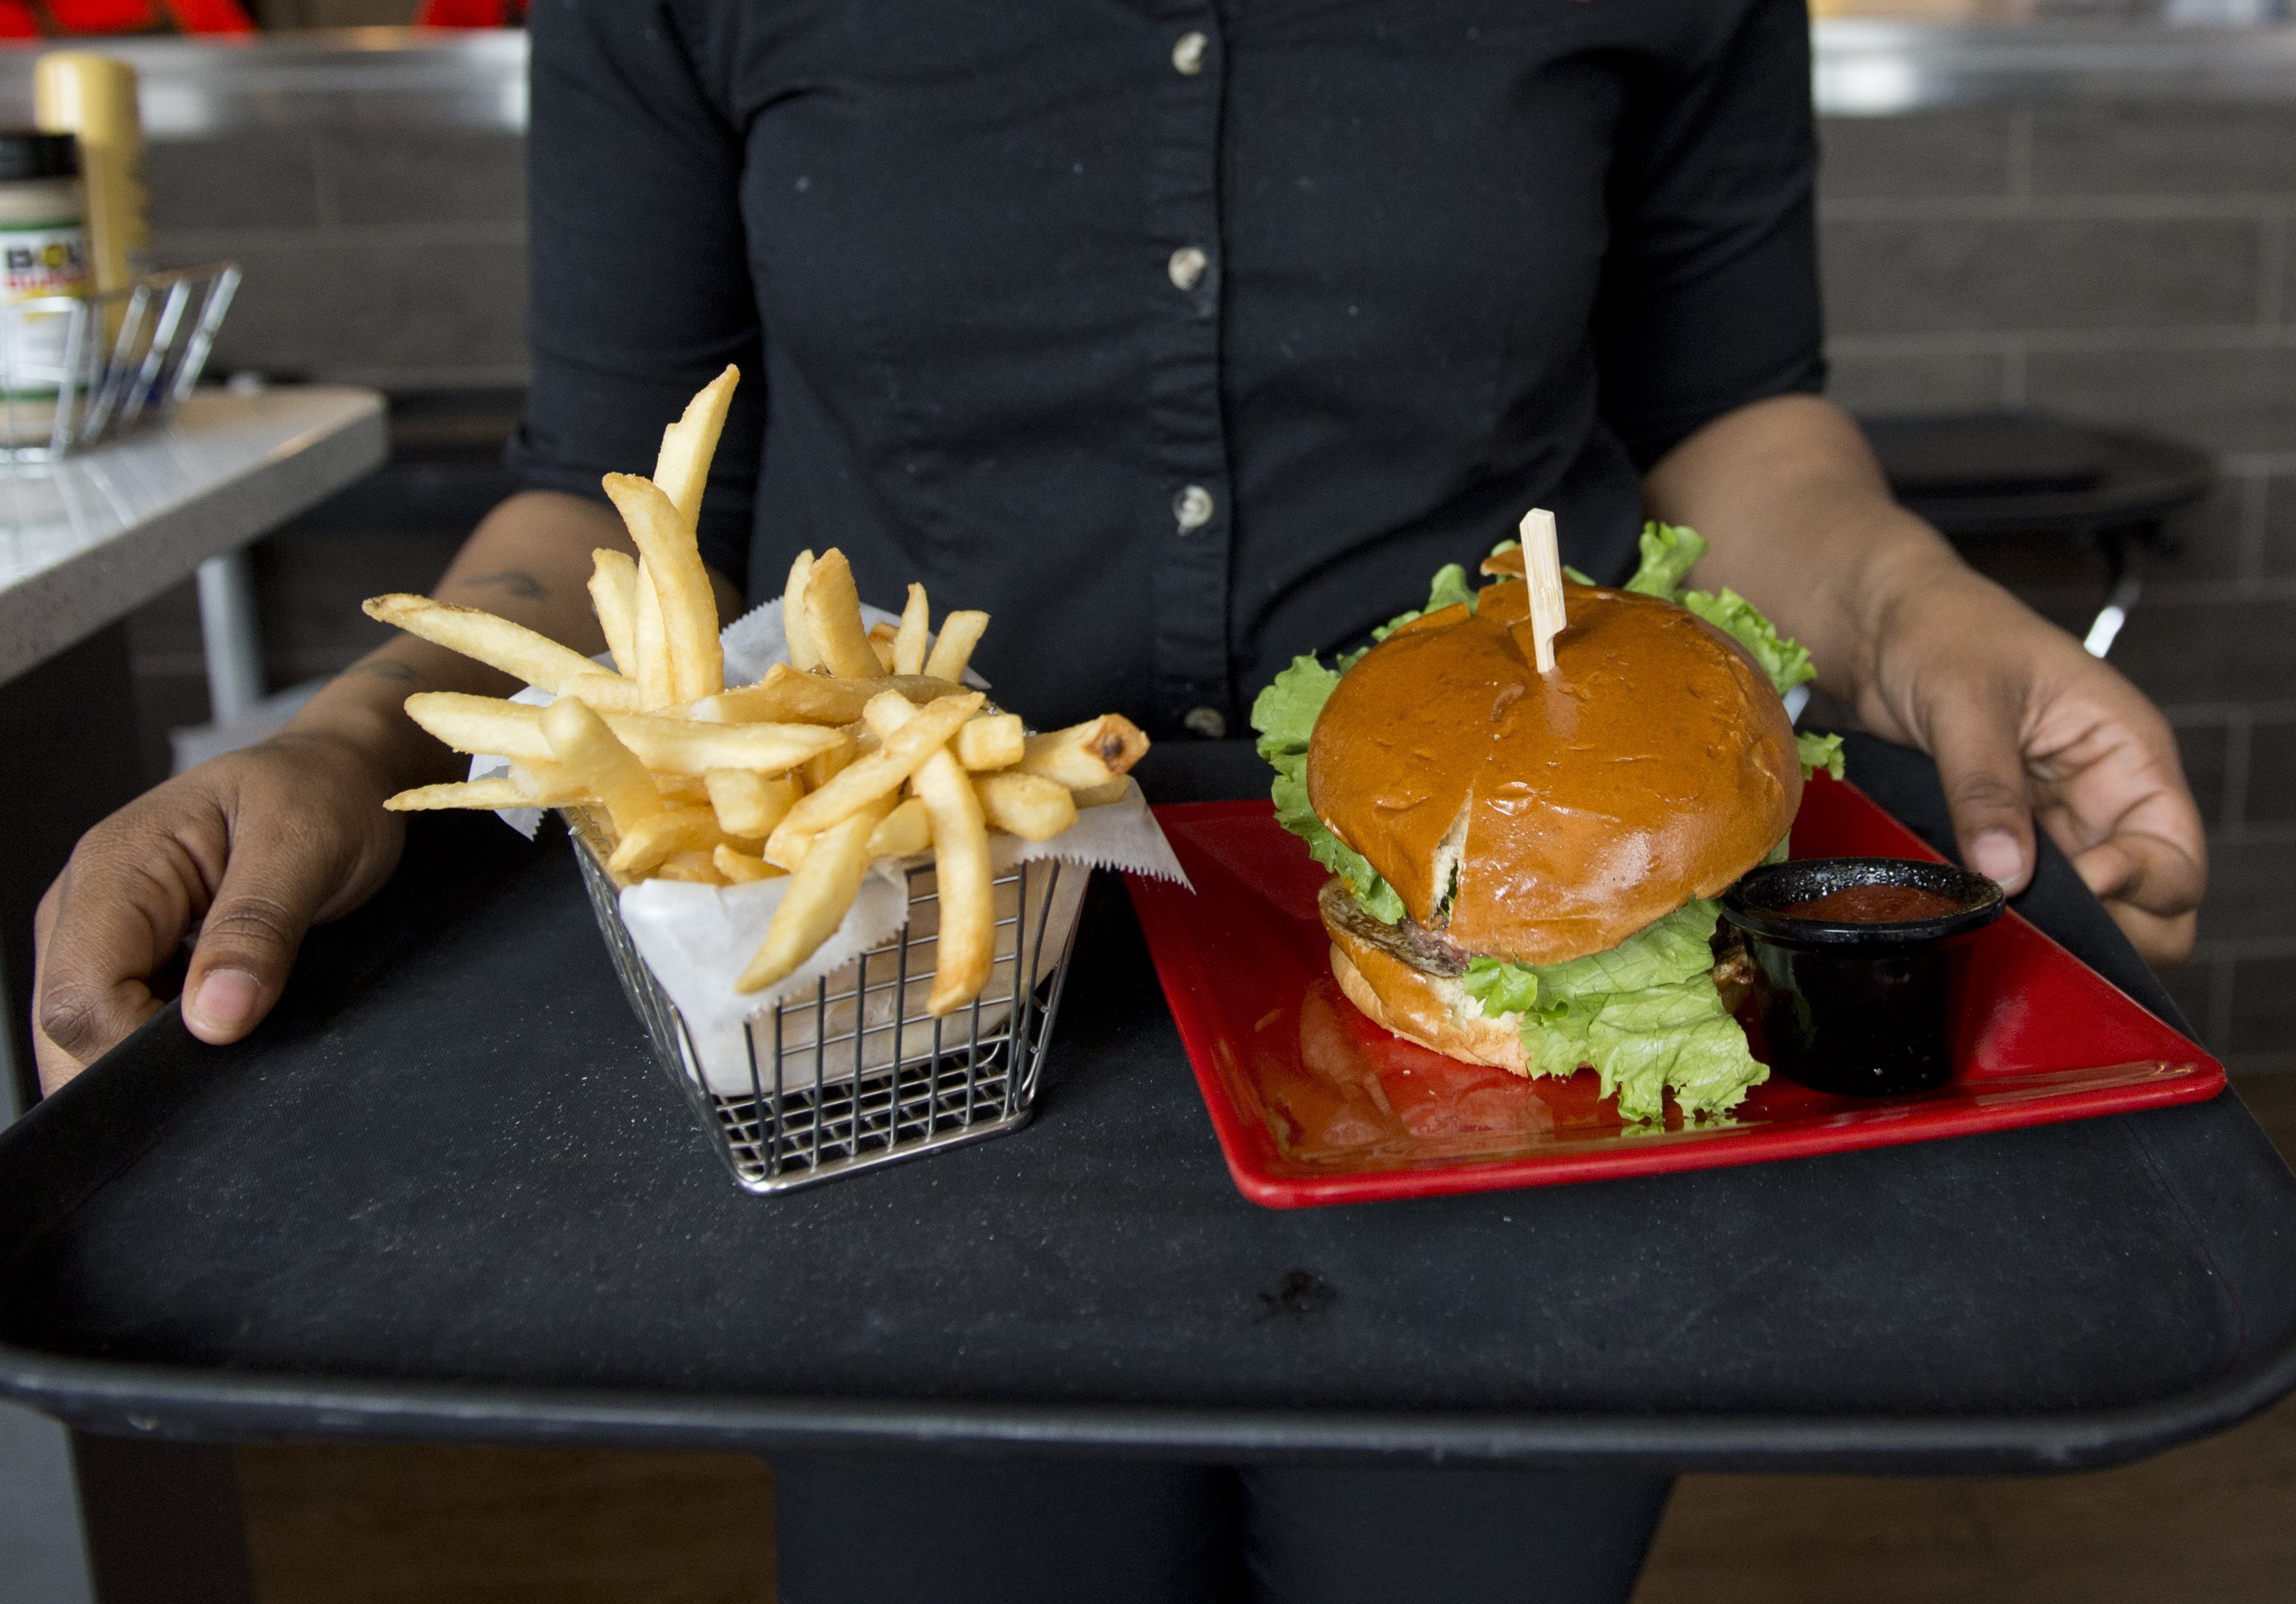 A server carries a tray with a hamburger and french fries at Bolt Burgers in Washington, DC on February 25, 2014.